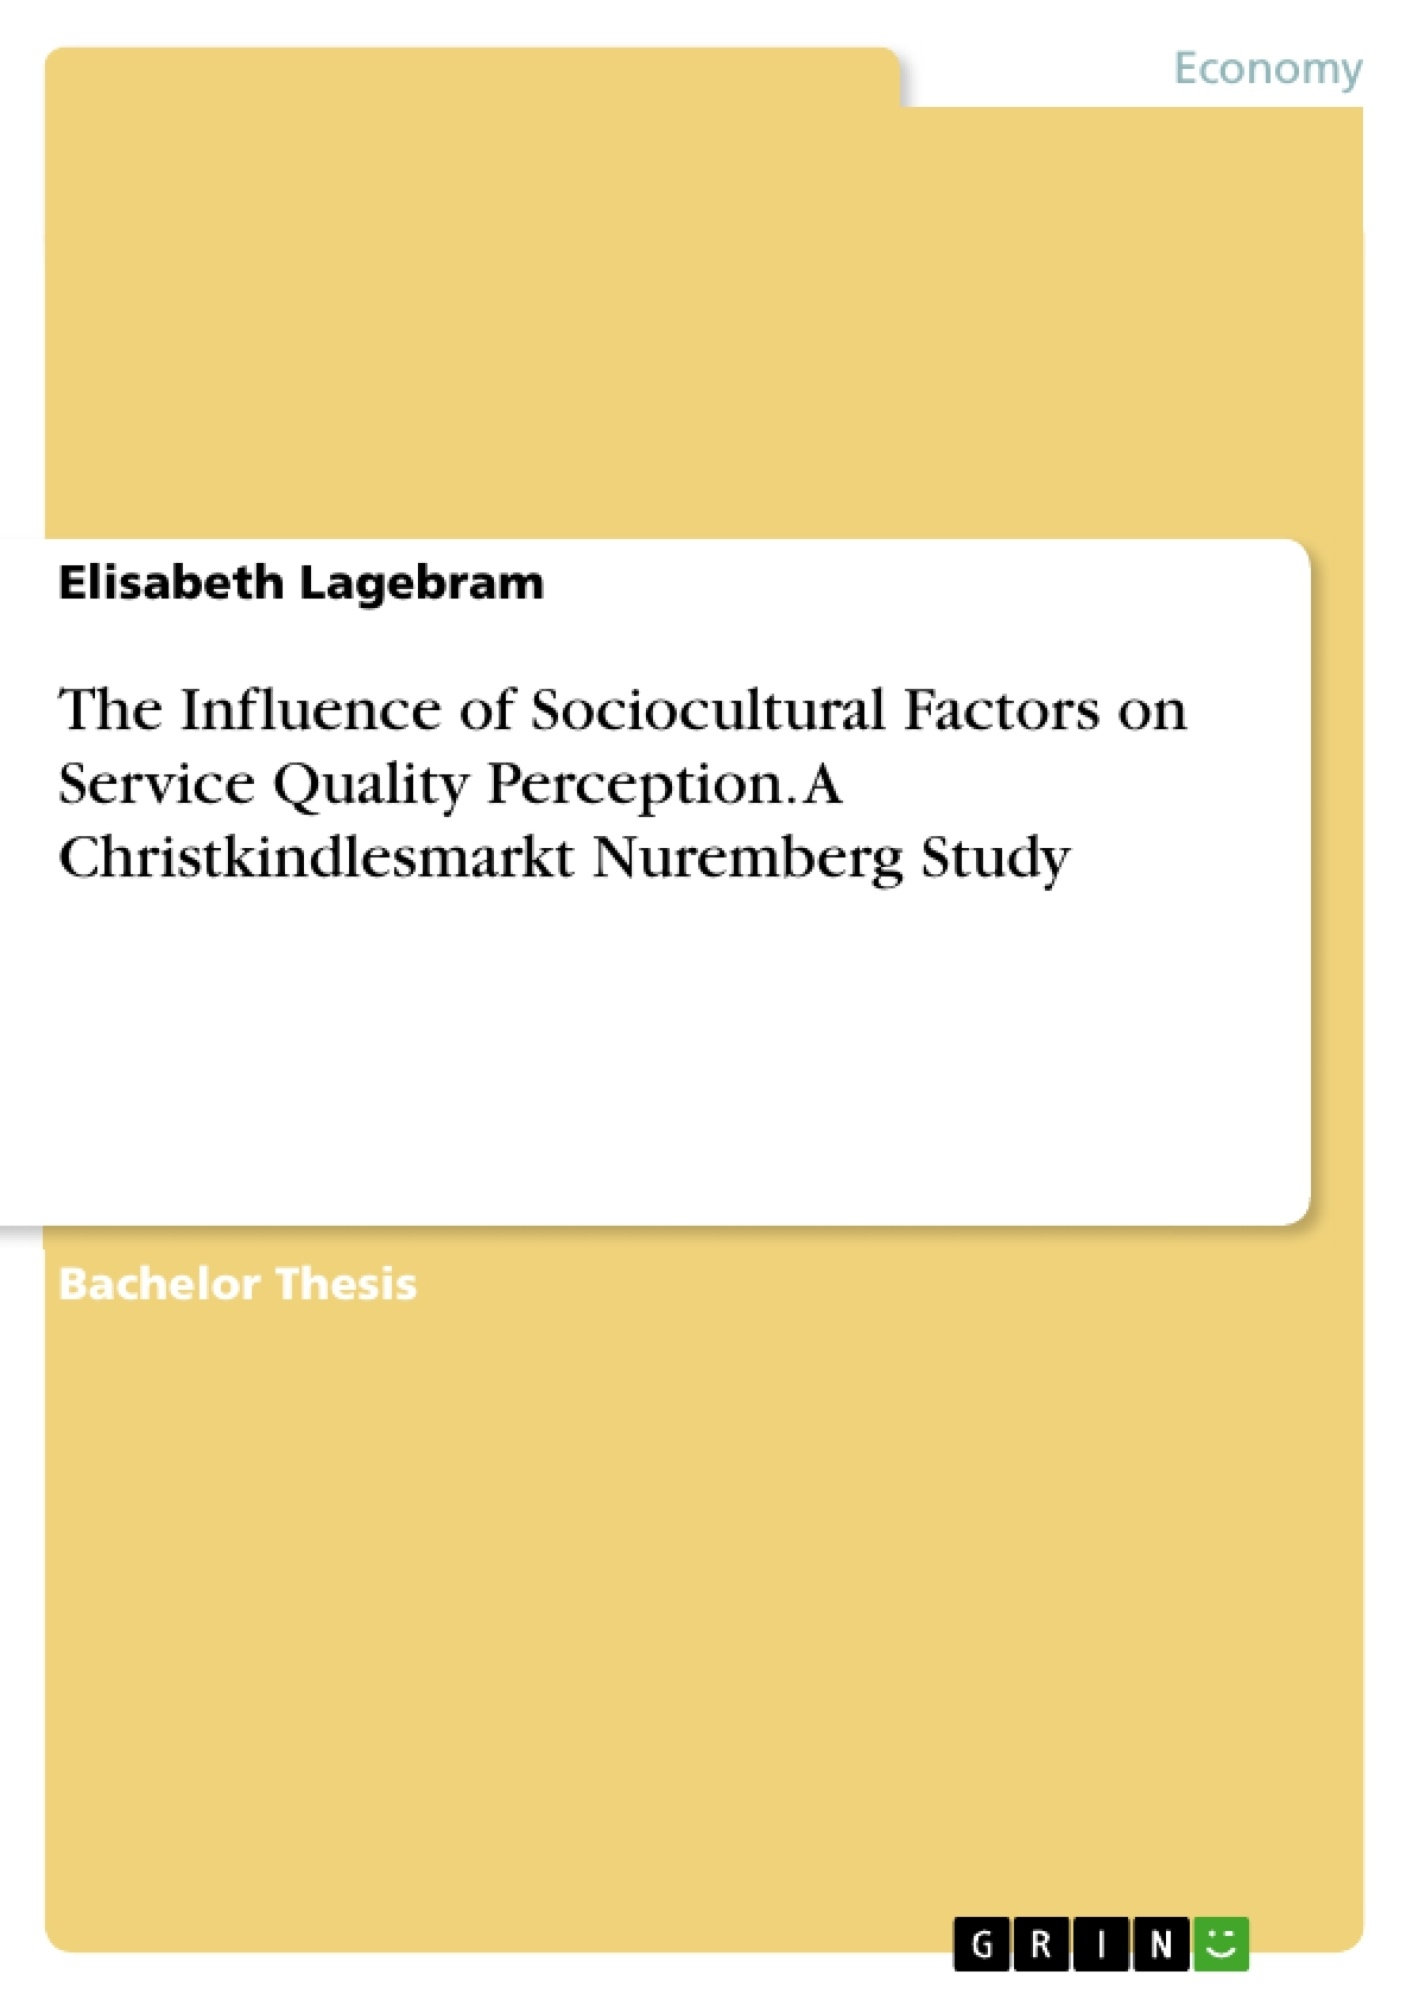 Title: The Influence of Sociocultural Factors on Service Quality Perception. A Christkindlesmarkt Nuremberg Study